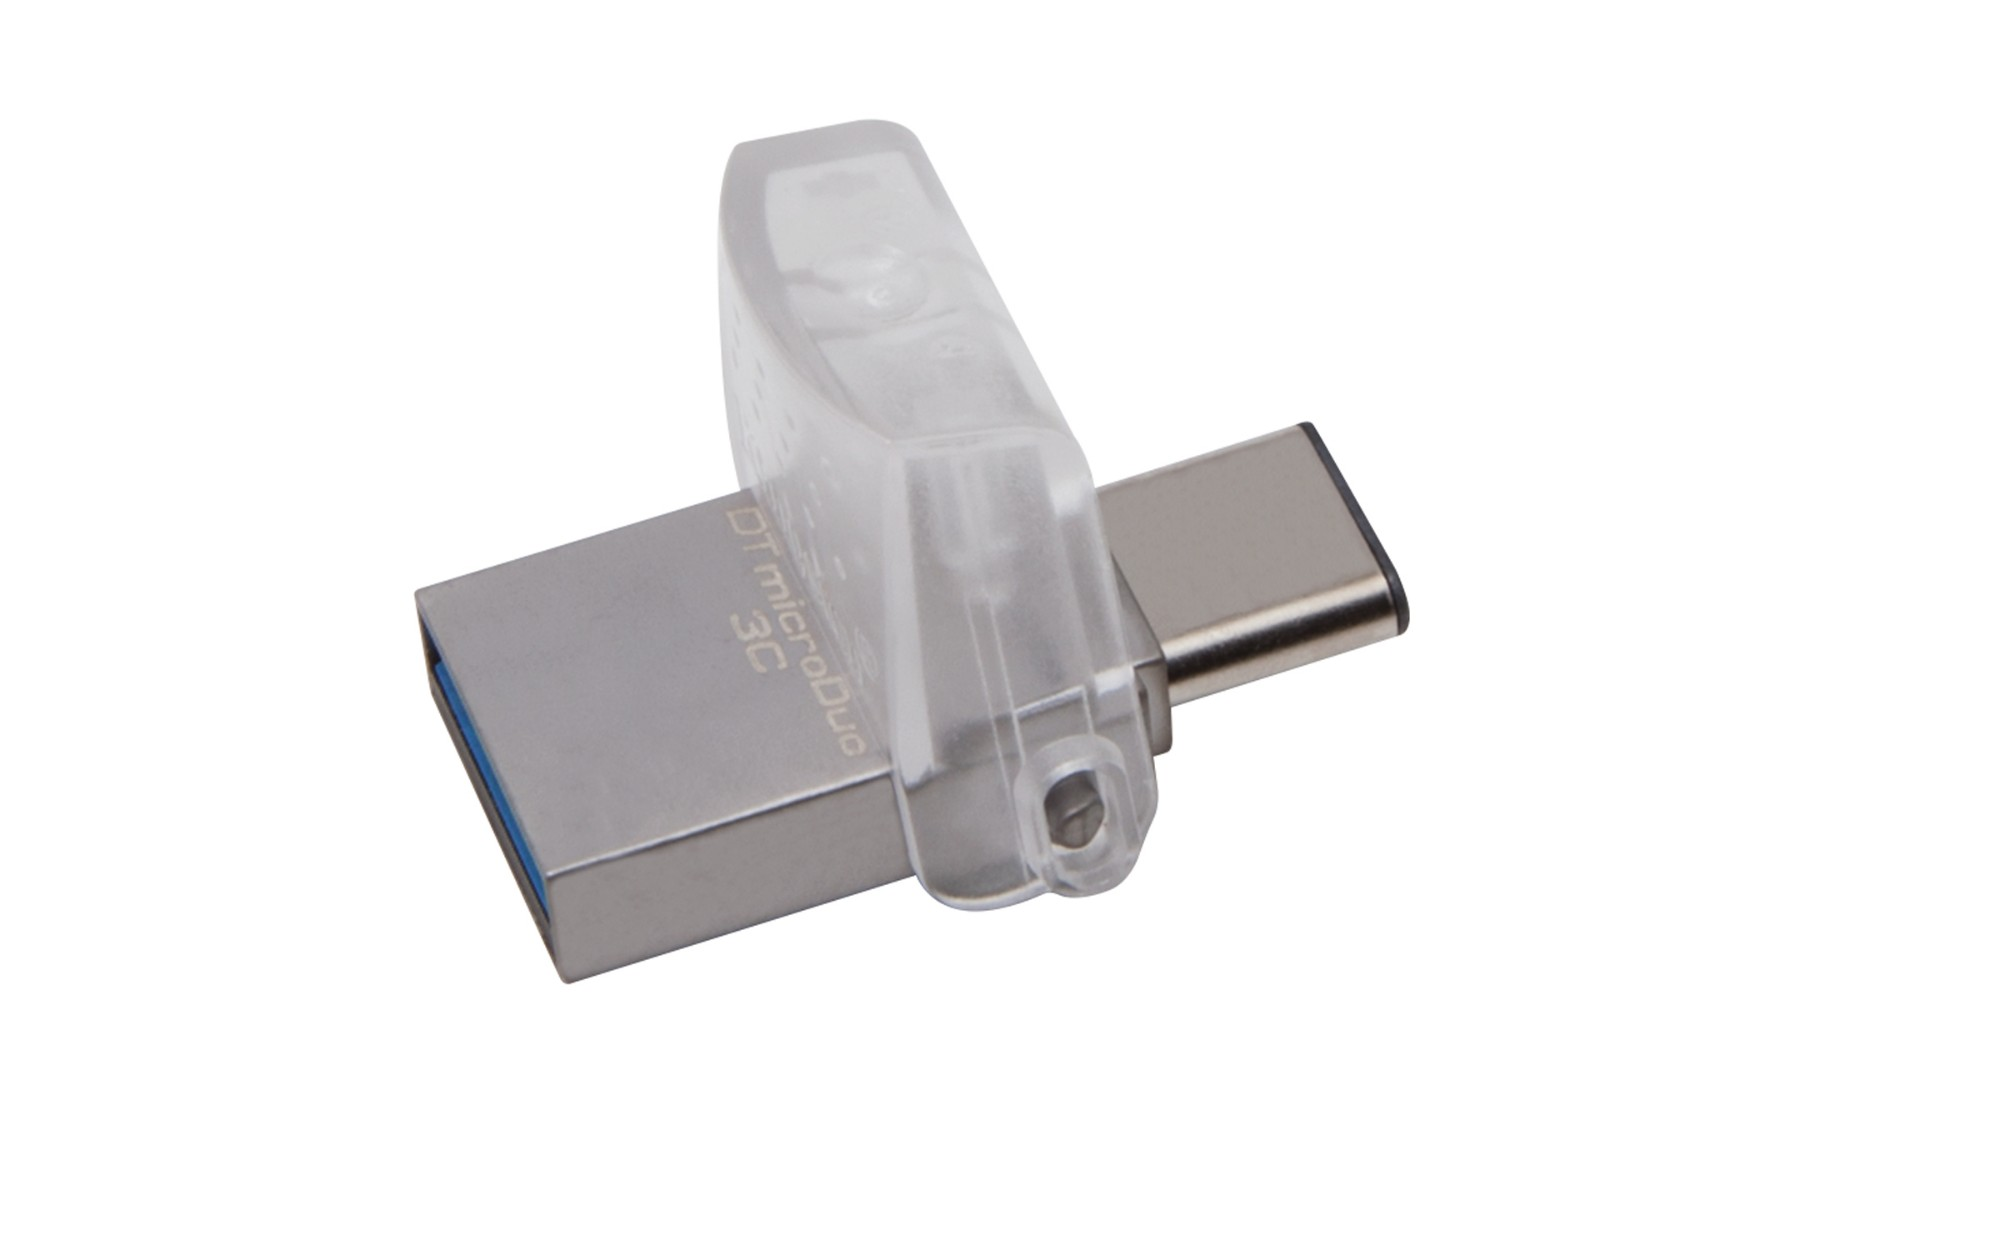 Kingston Technology DataTraveler microDuo 3C 32GB unidad flash USB USB Type-A / USB Type-C 3.2 Gen 1 (3.1 Gen 1) Plata